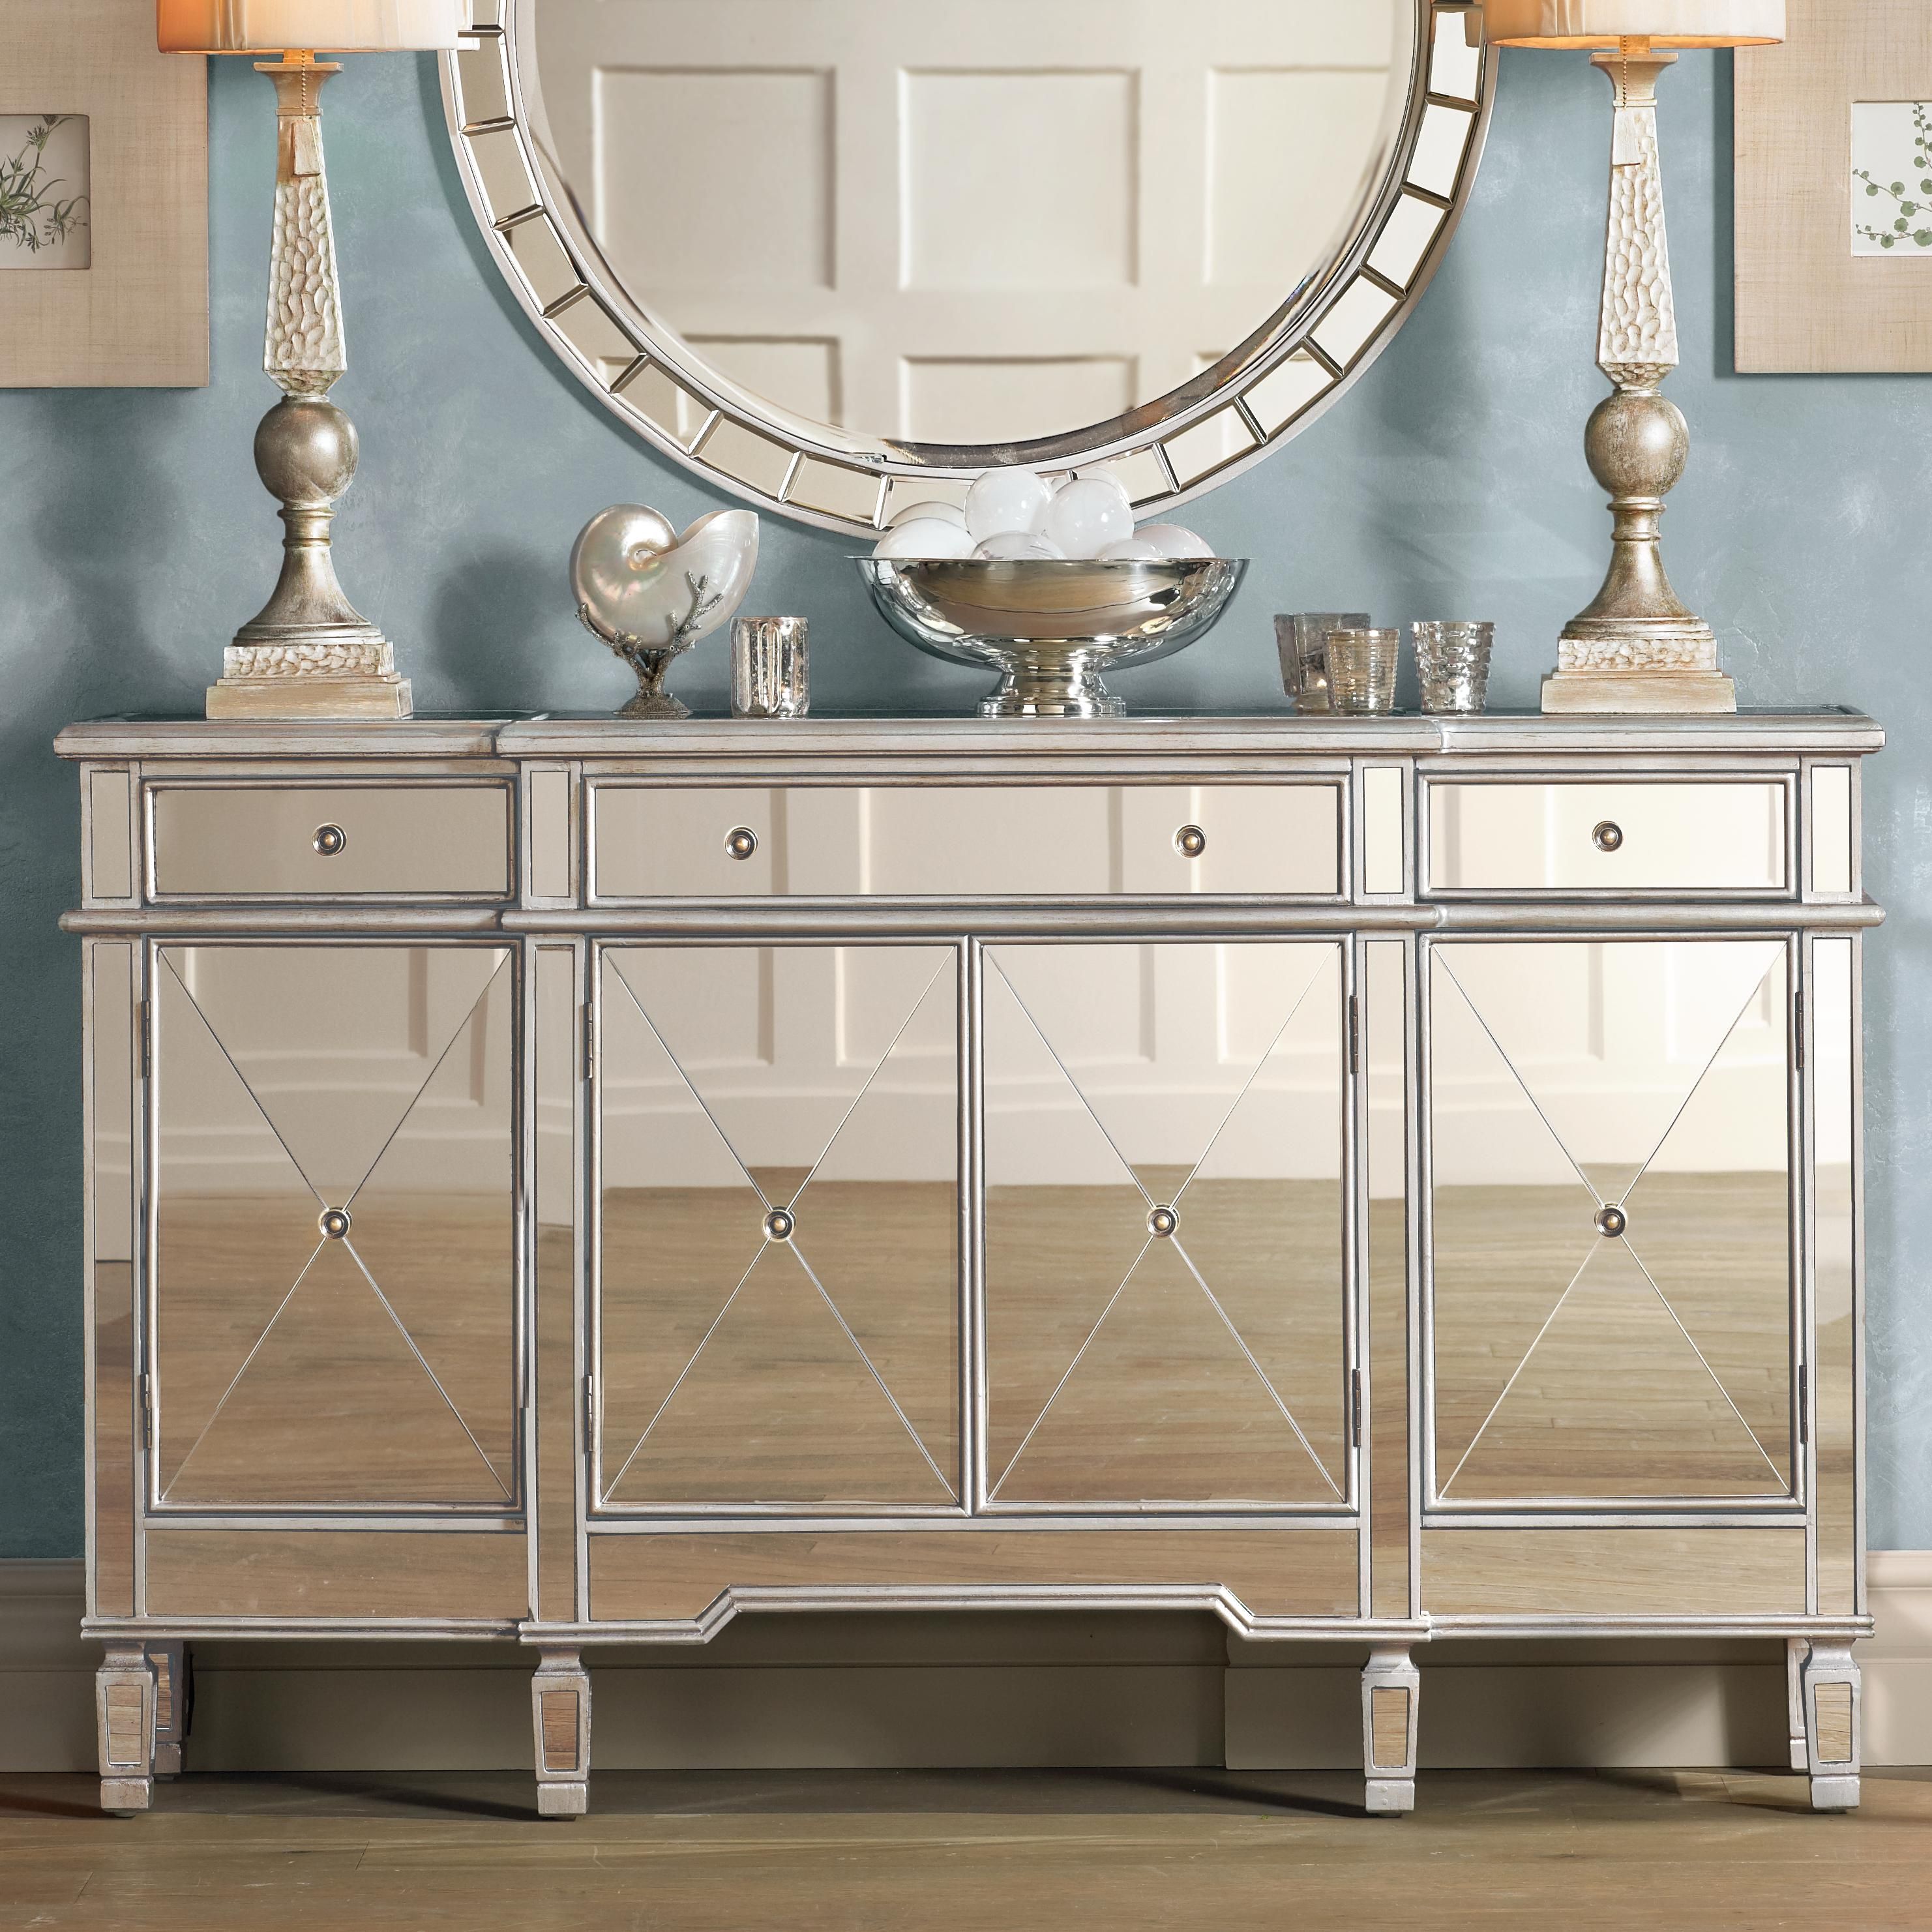 Hailey Mirrored Console Chest Mirrored Furniture